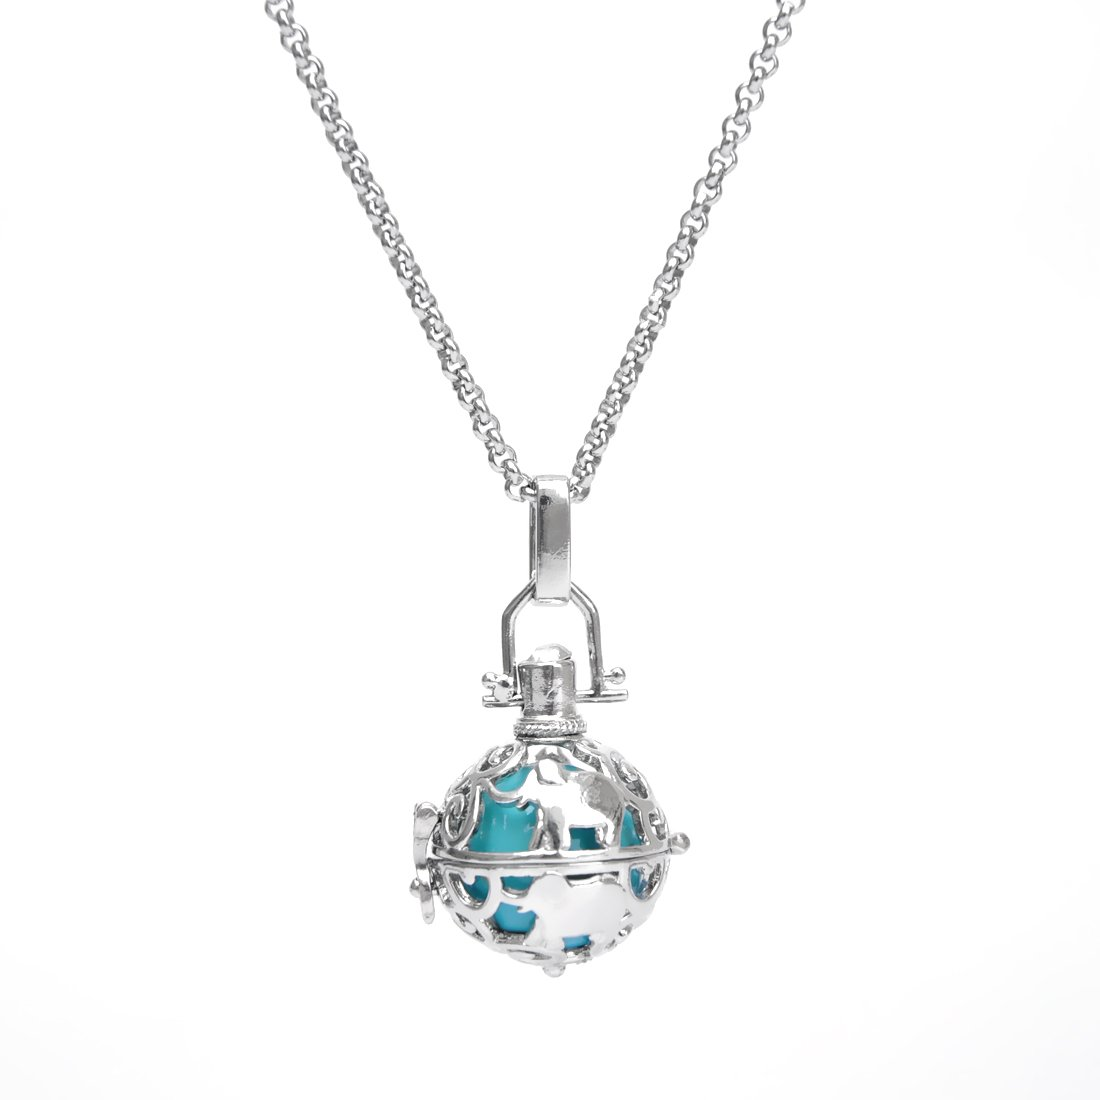 Cute Elephant Angel Chime Caller Ball Mexican Bola Harmony Musical Ball Pendant Pregnancy Necklace 30'' (Turquoise Inner Ball)